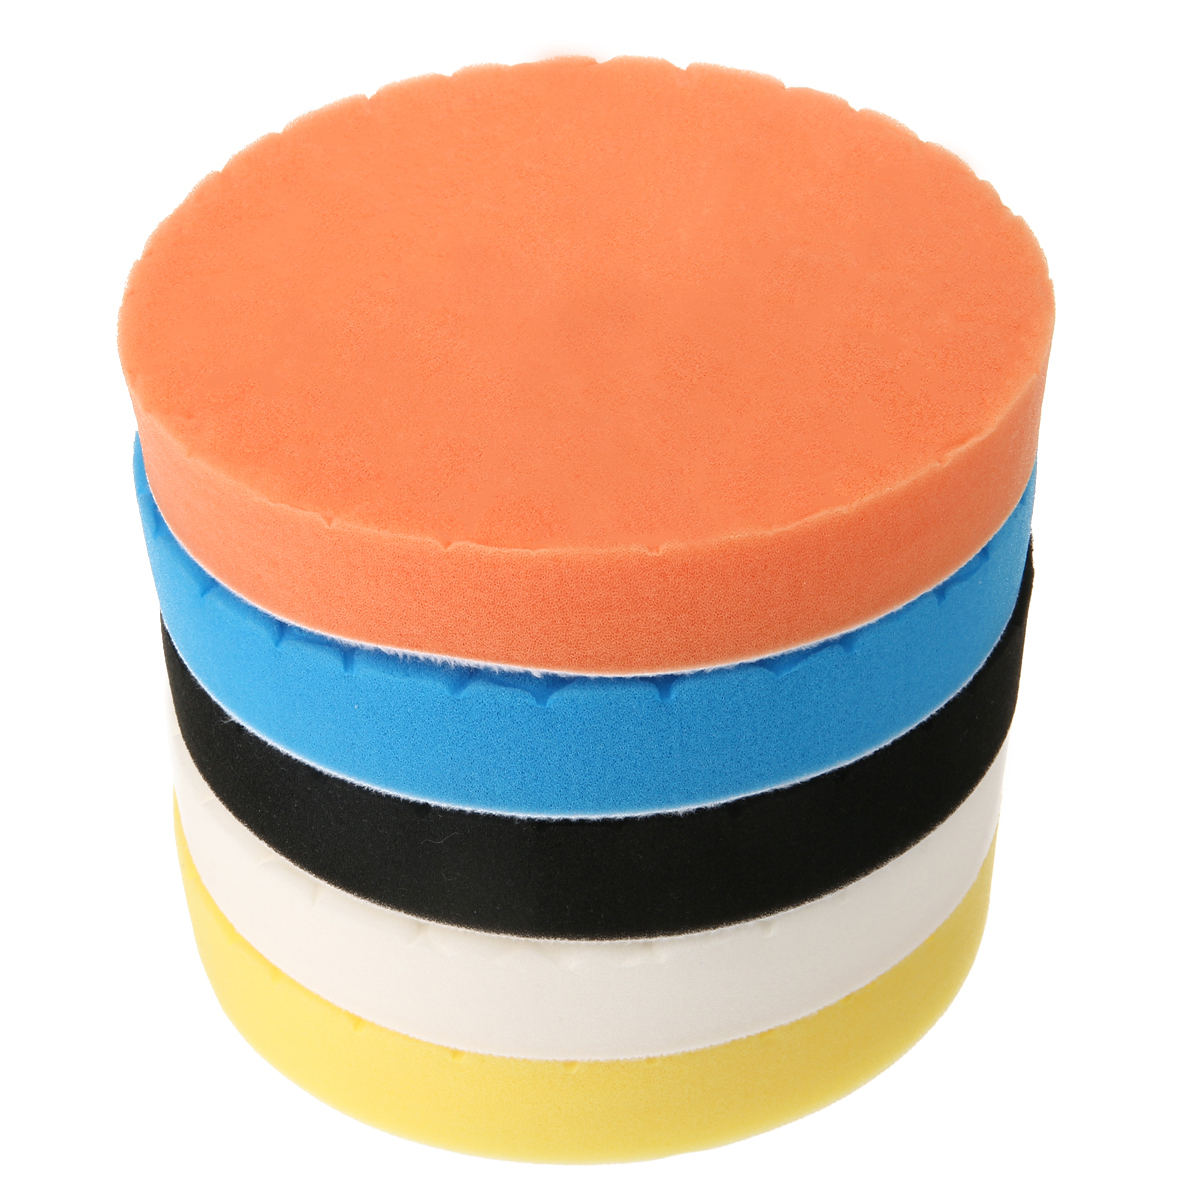 5pcs 7 Inch Polishing Disc Pad Kit White Blue Yellow Black Orange 5 Colors Buffing Sponge Foam For Car Polisher Buffer